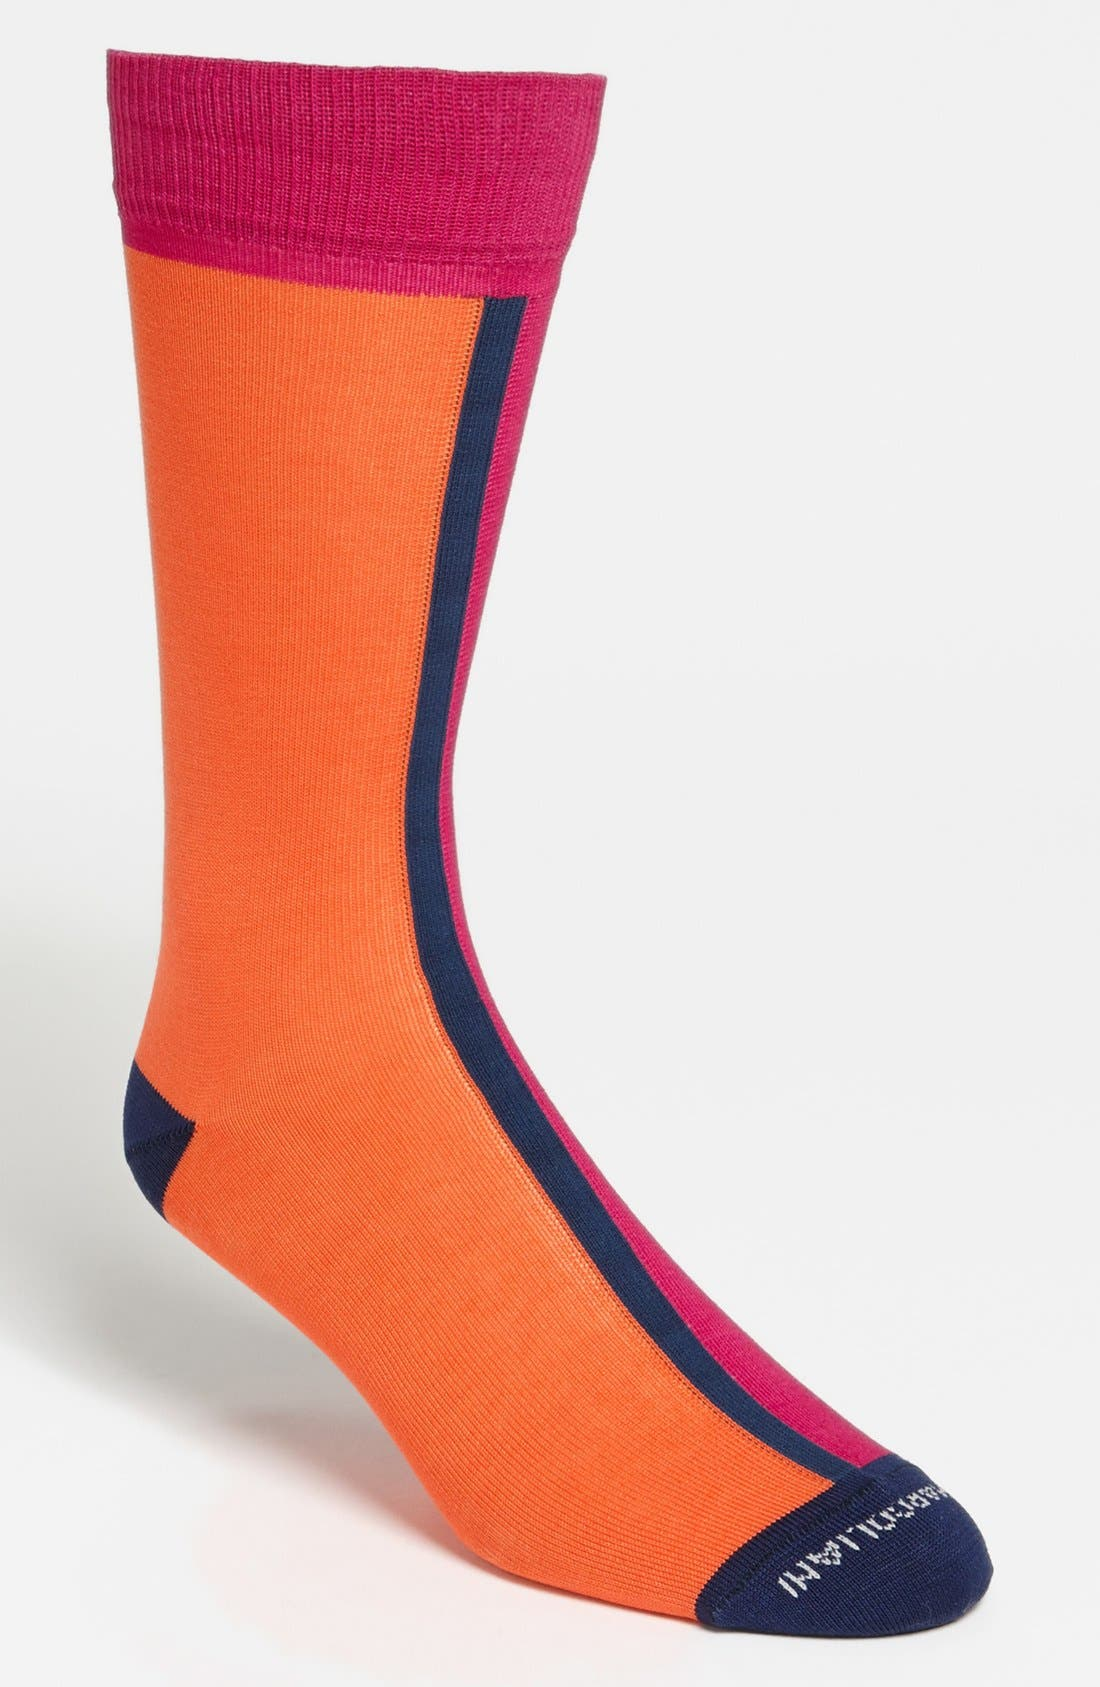 Main Image - Marcoliani 'In & Out' Socks